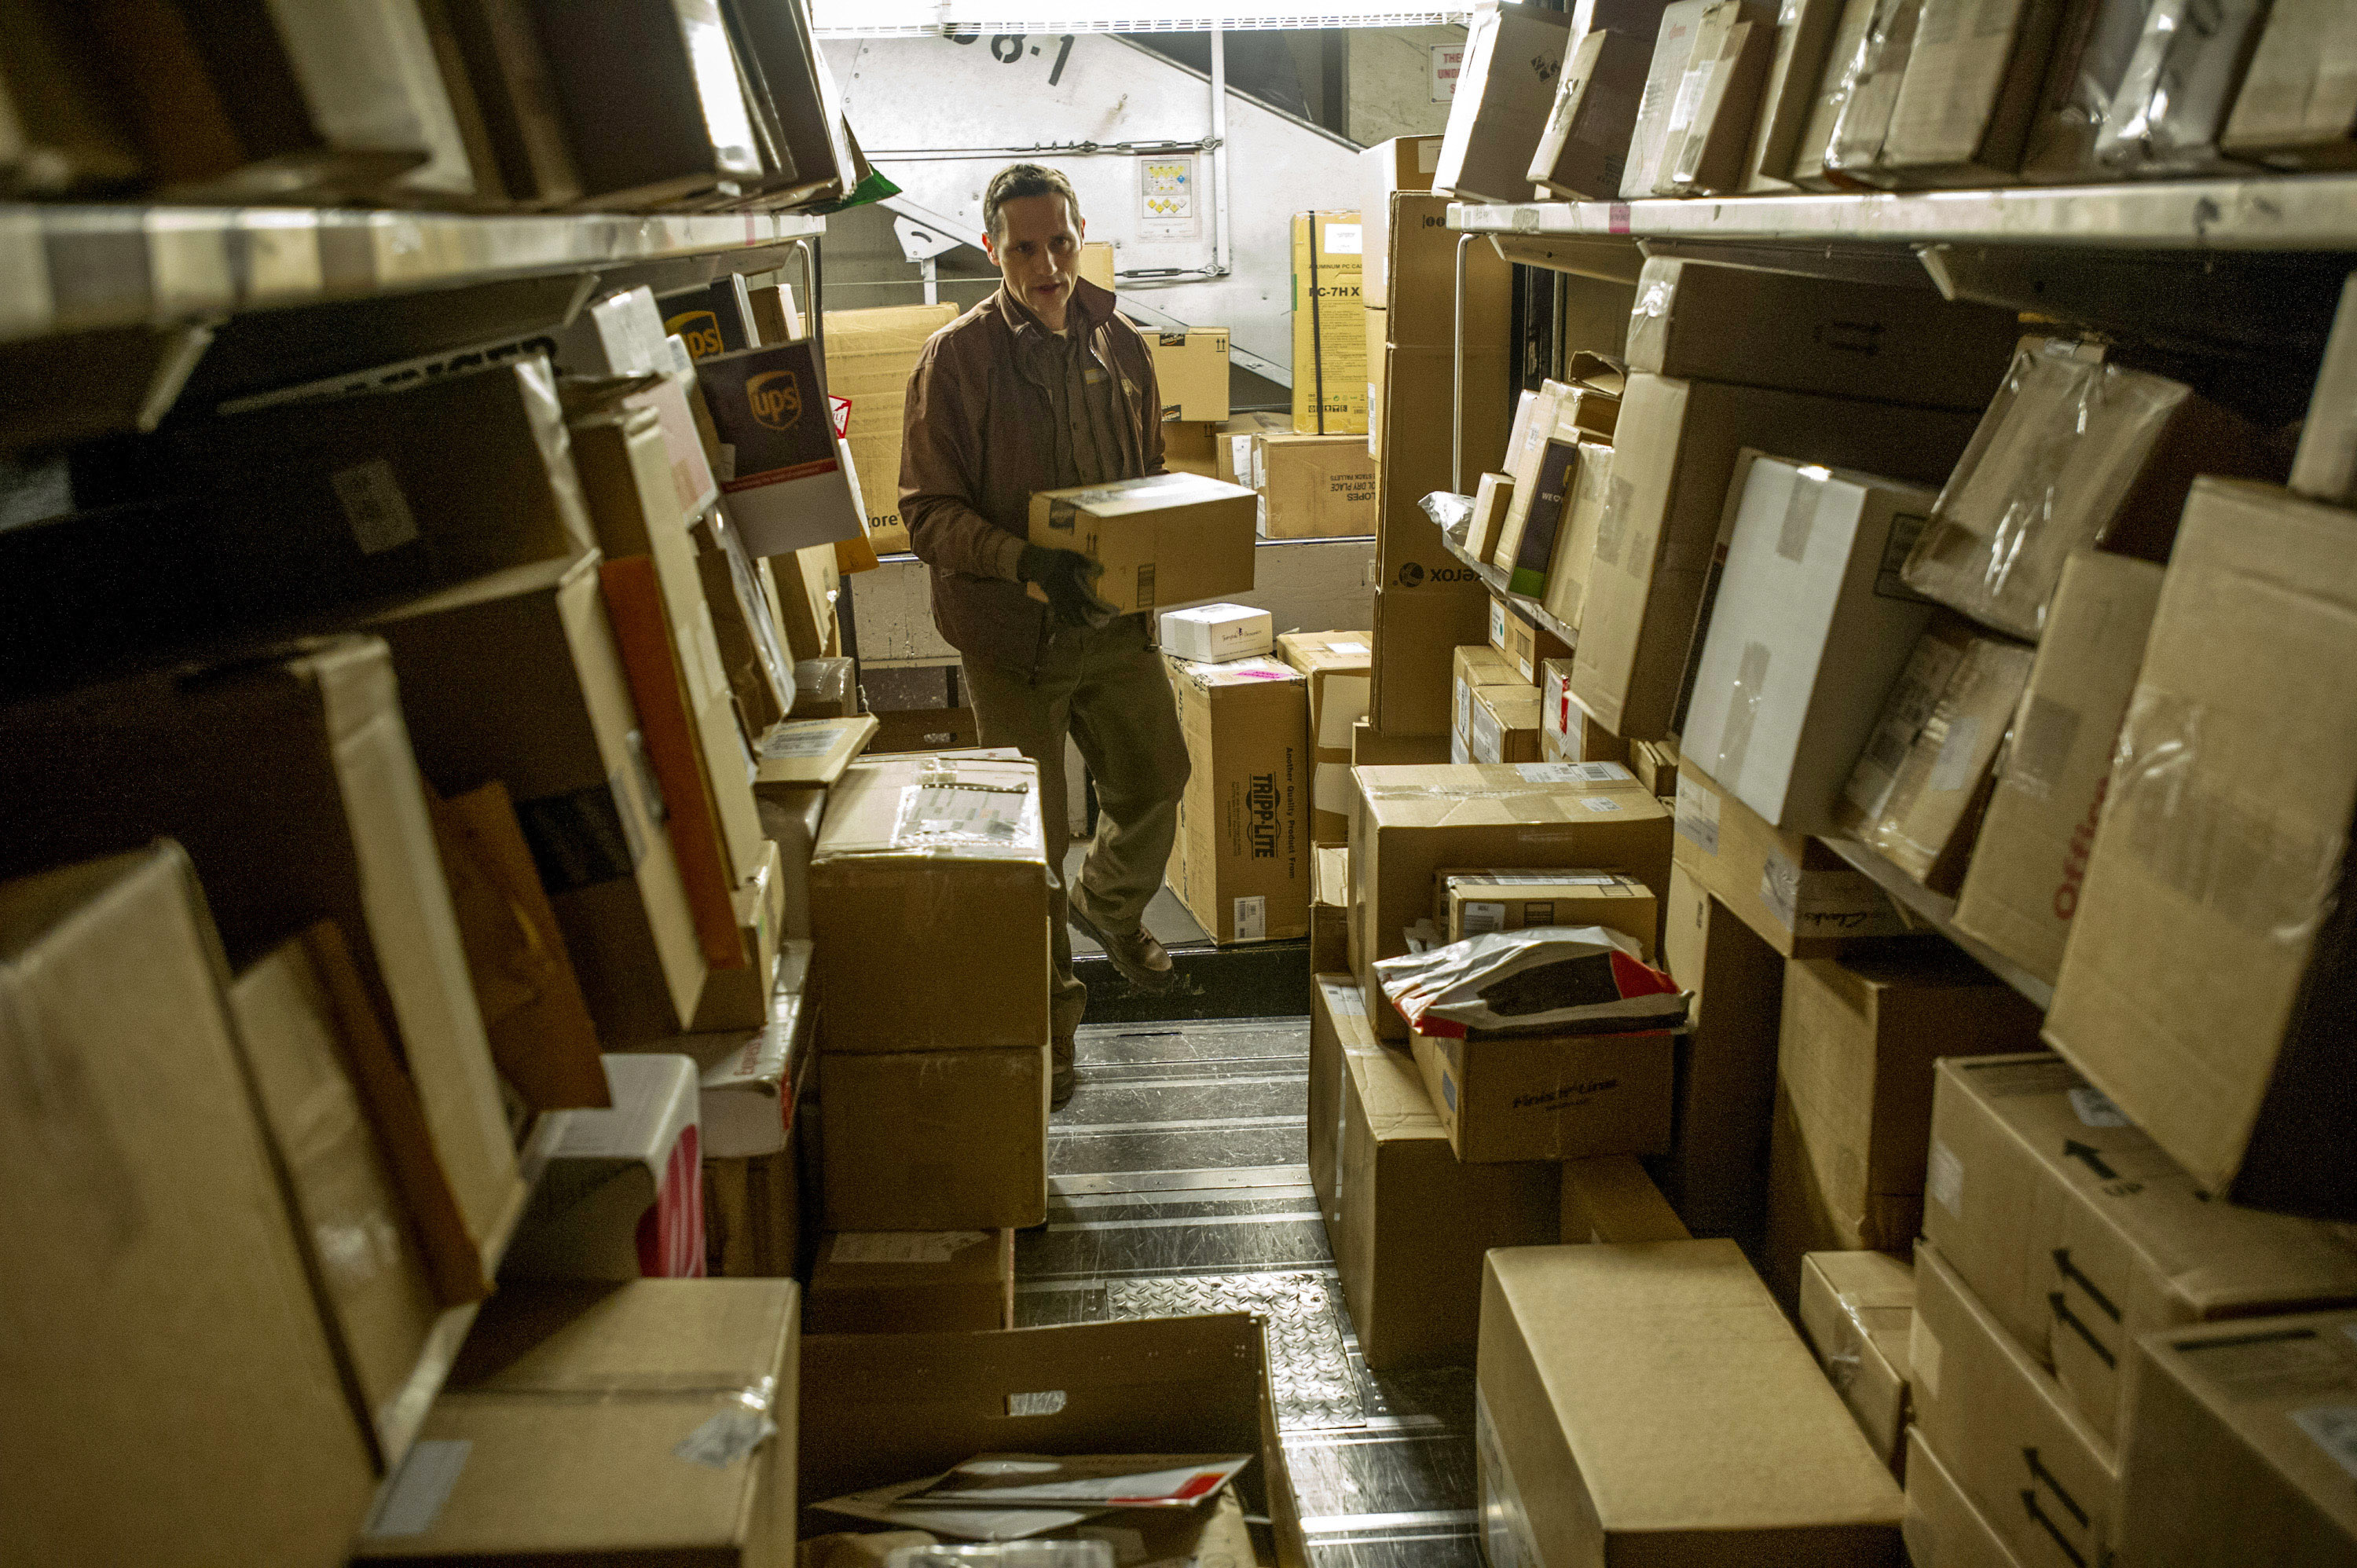 A United Parcel Service Inc. (UPS) driver loads his truck with packages at a UPS sorting facility in San Francisco, California, U.S., on Thursday, Dec. 20, 2012.